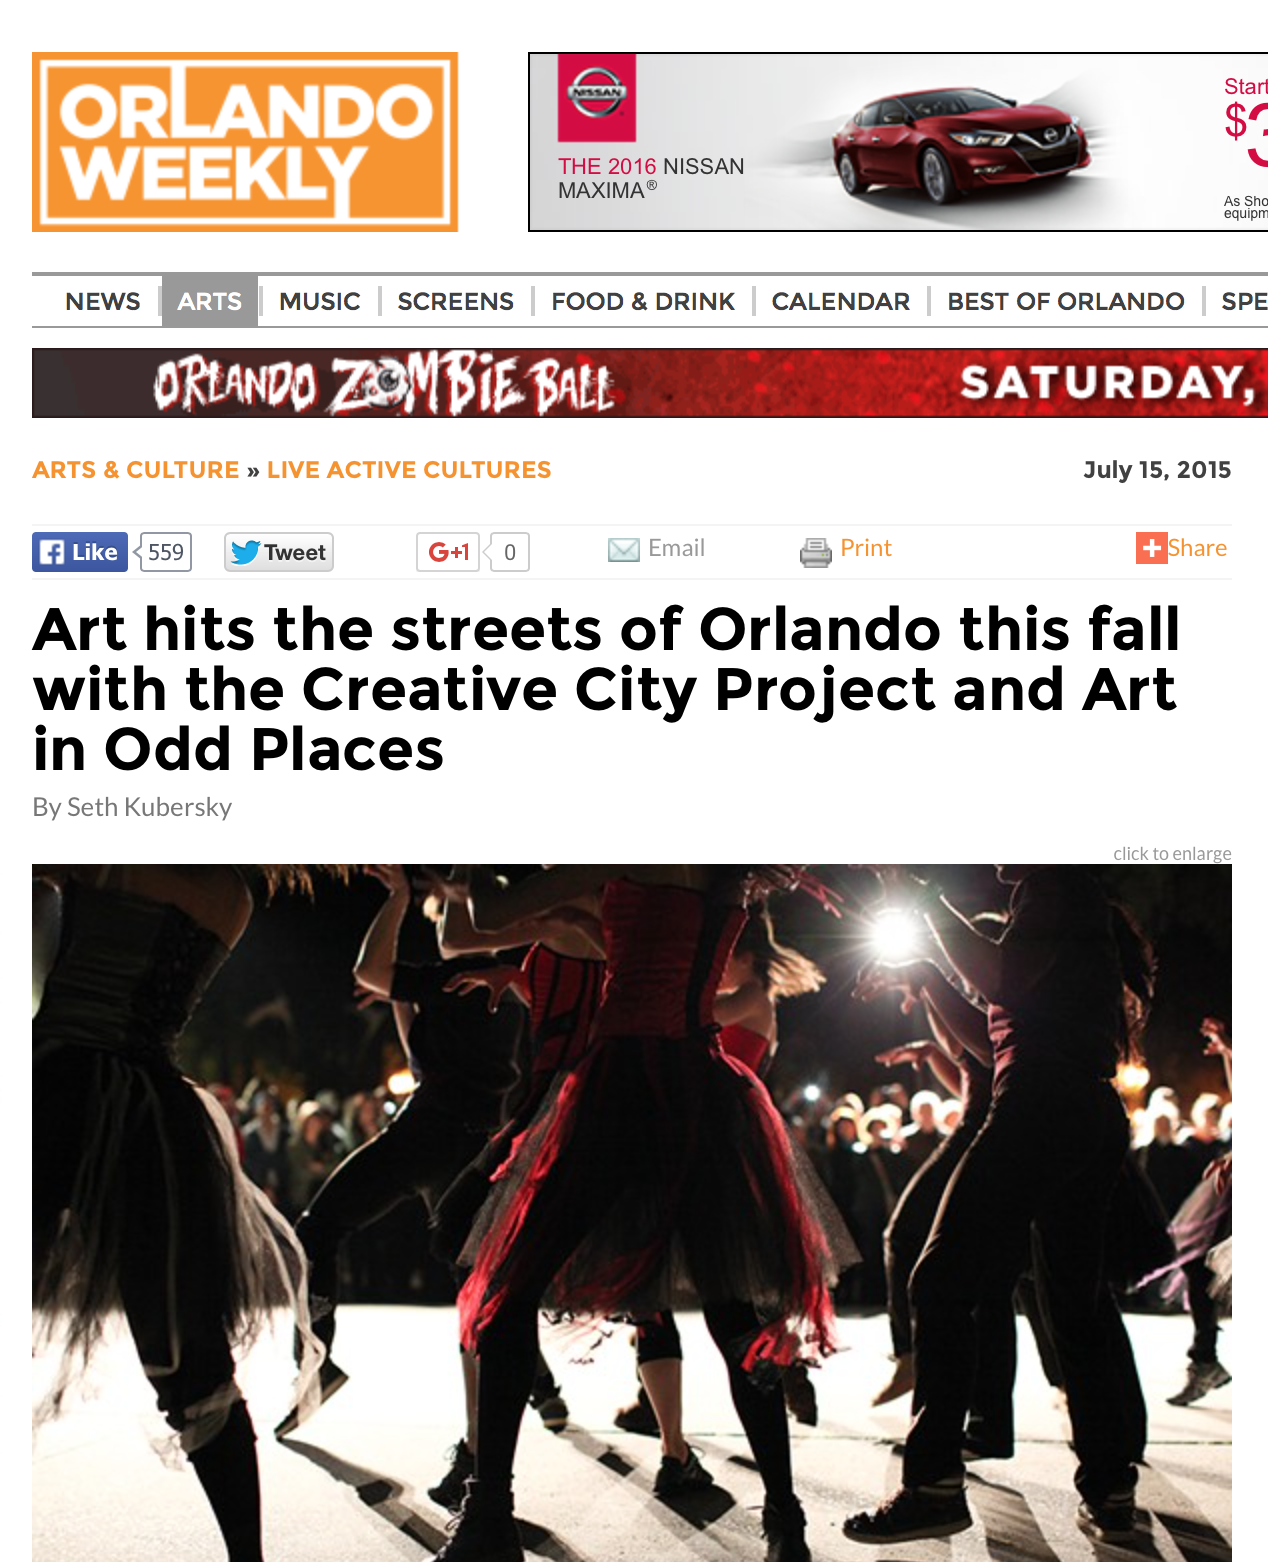 orlandoweeklyarticle1.png